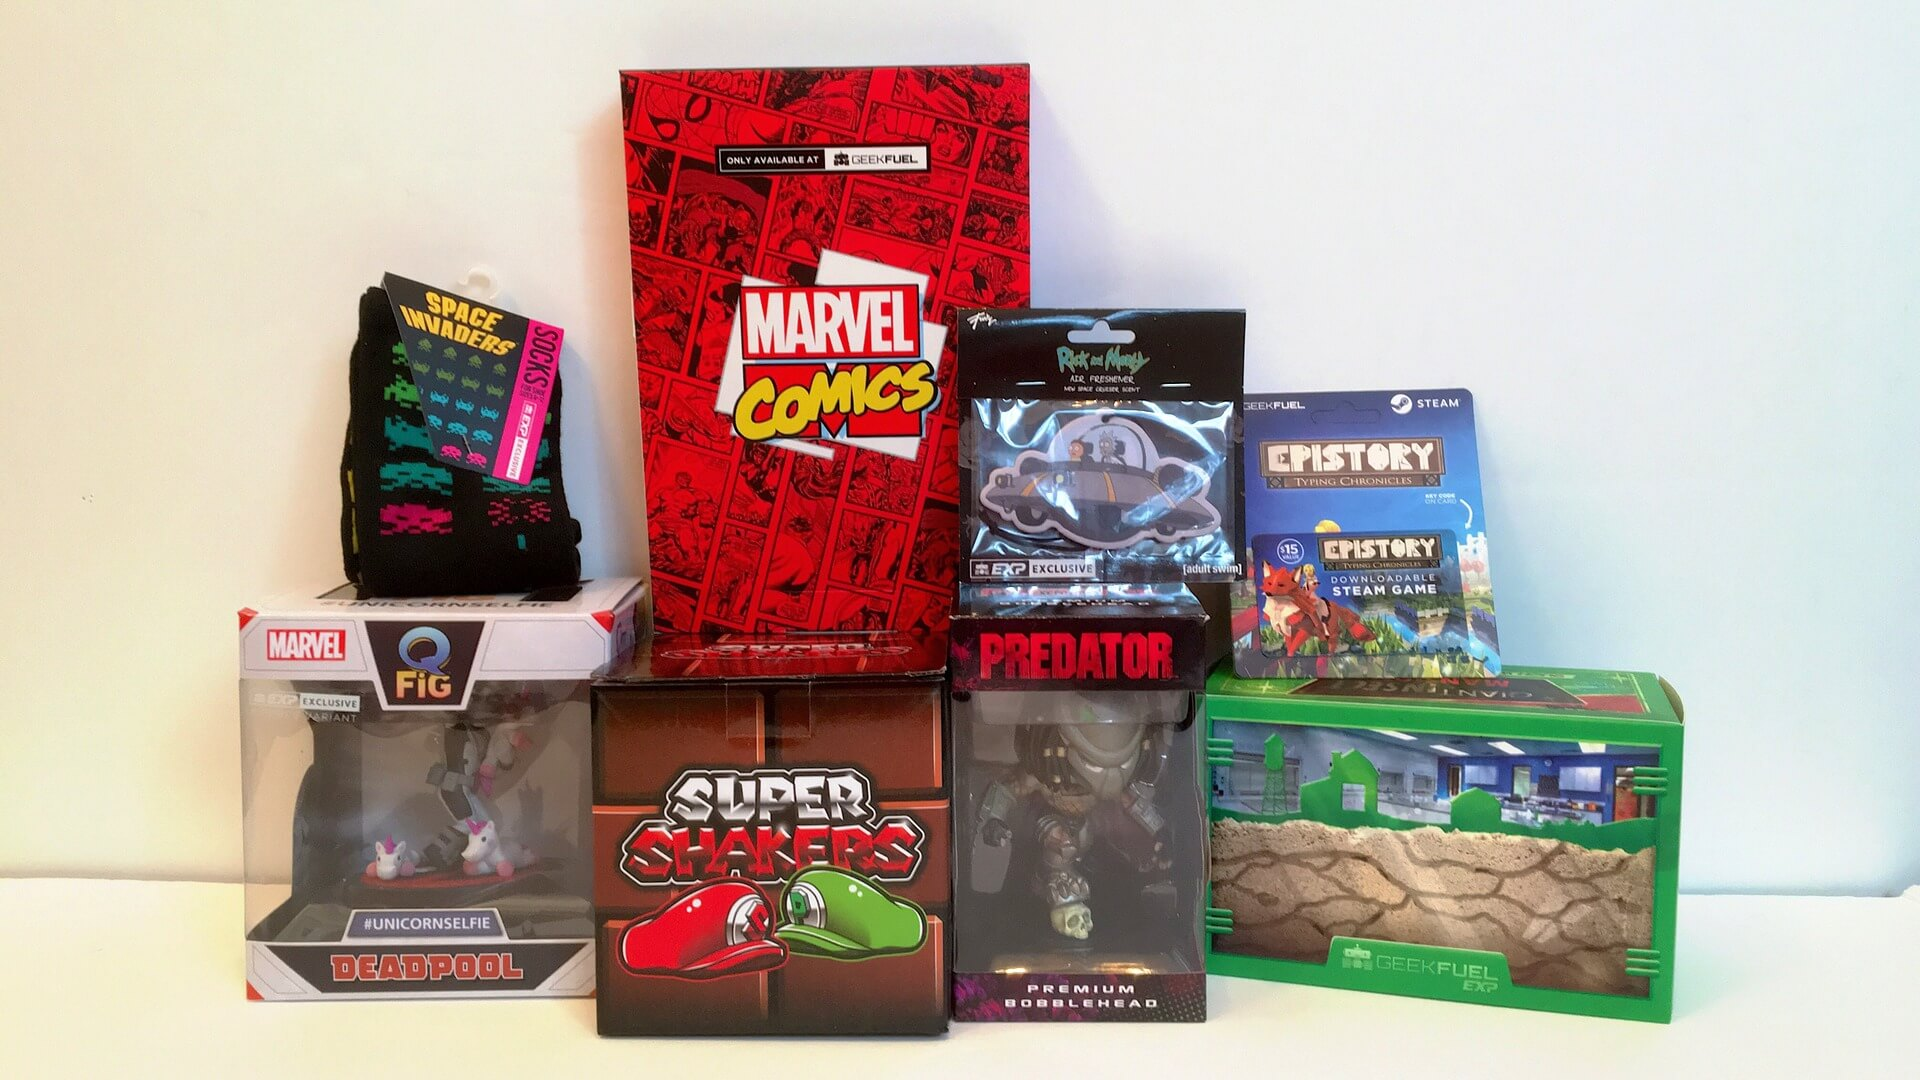 Geek Fuel EXP: Ant-Man, Spider-Man, Mario Brothers & More- Review